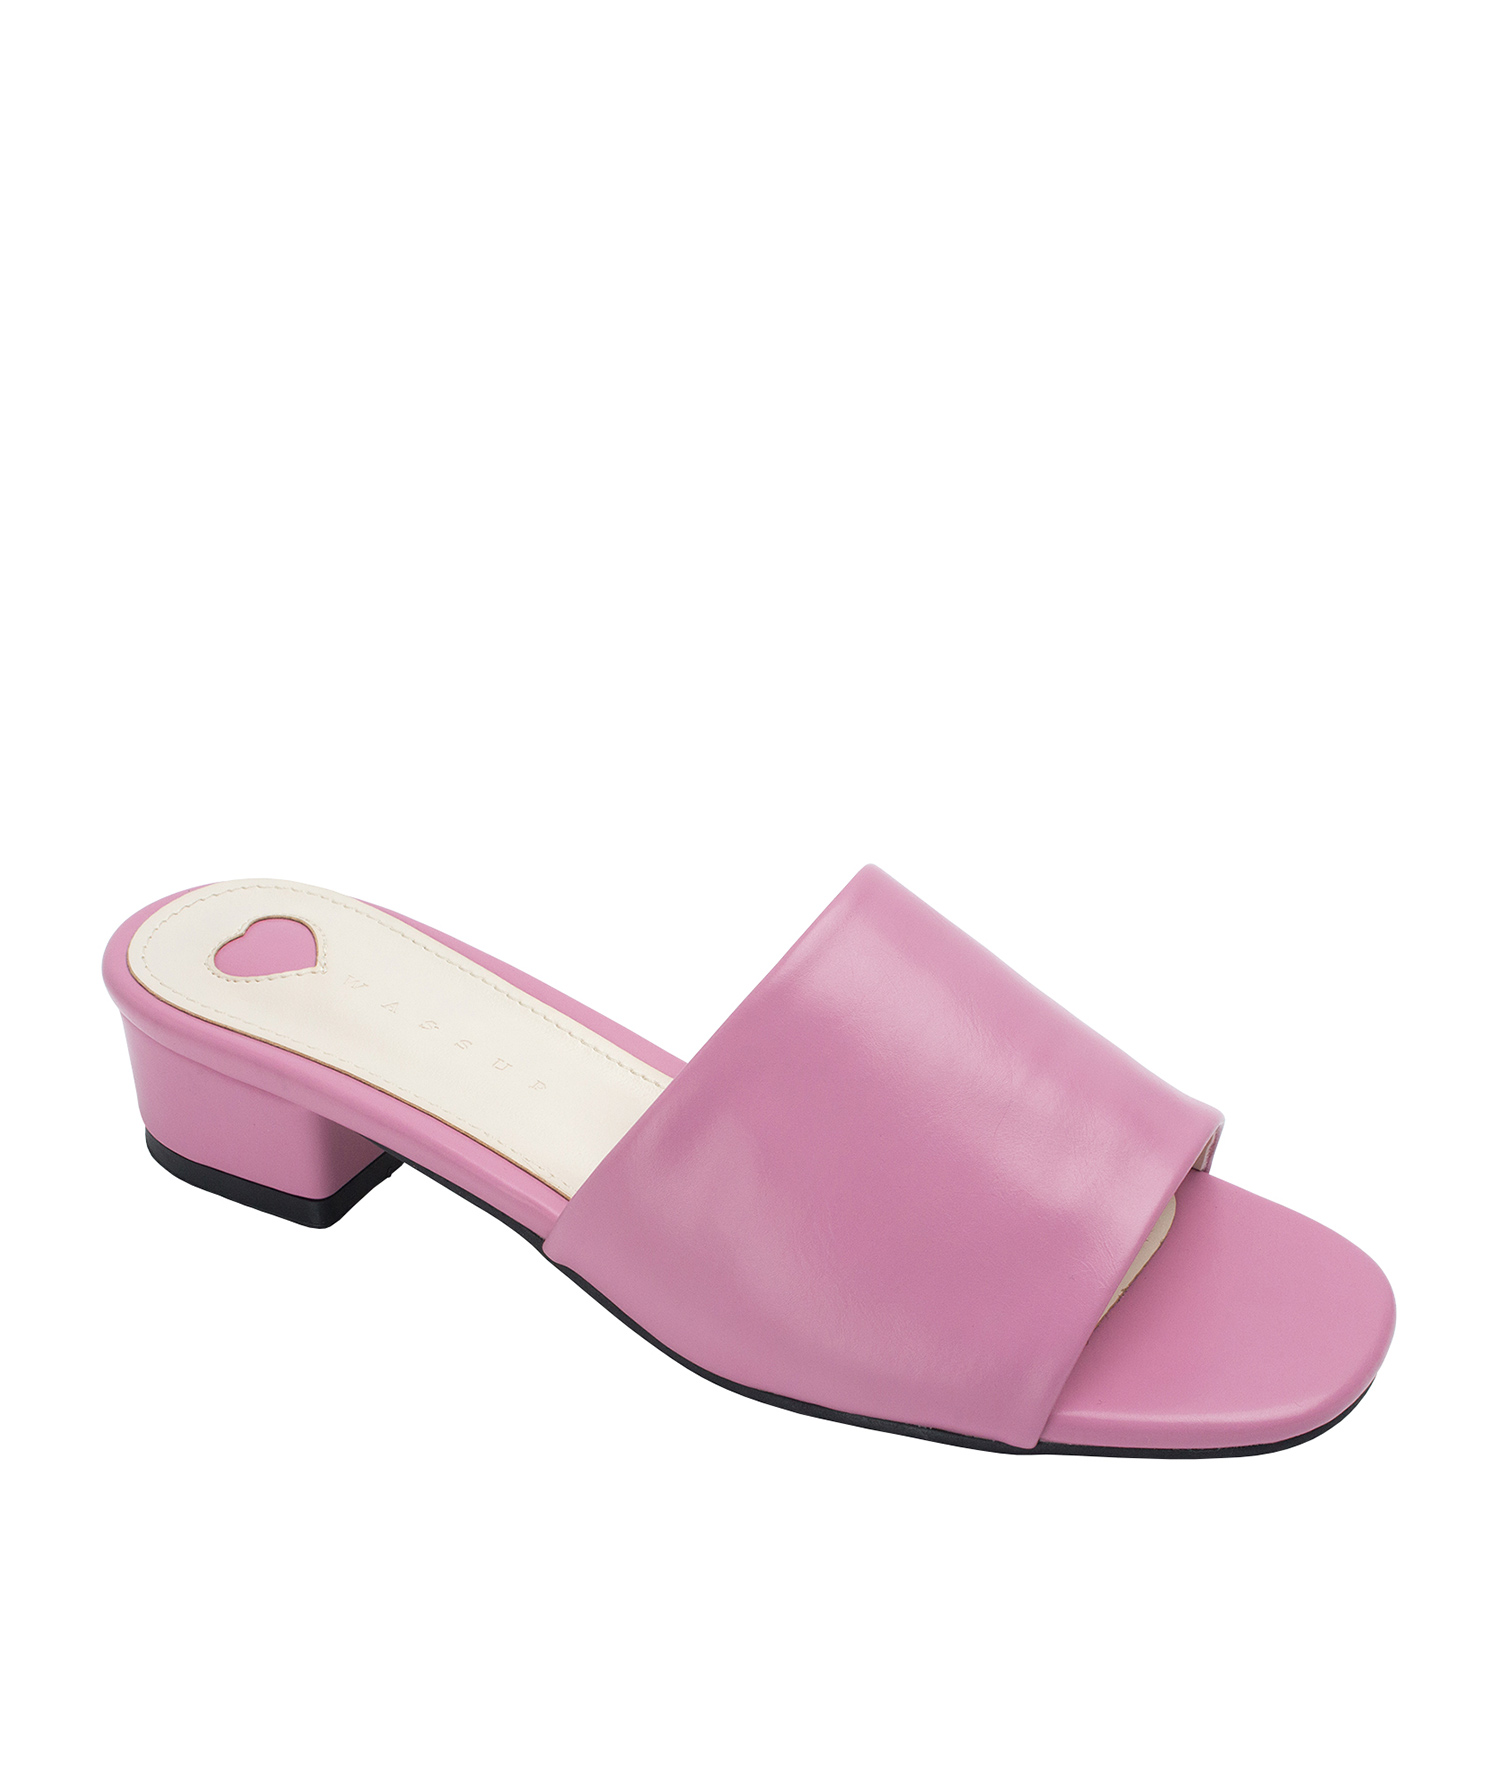 4675e3fa018 Annakastle Womens Faux Leather Flat Mule Sandals Pink